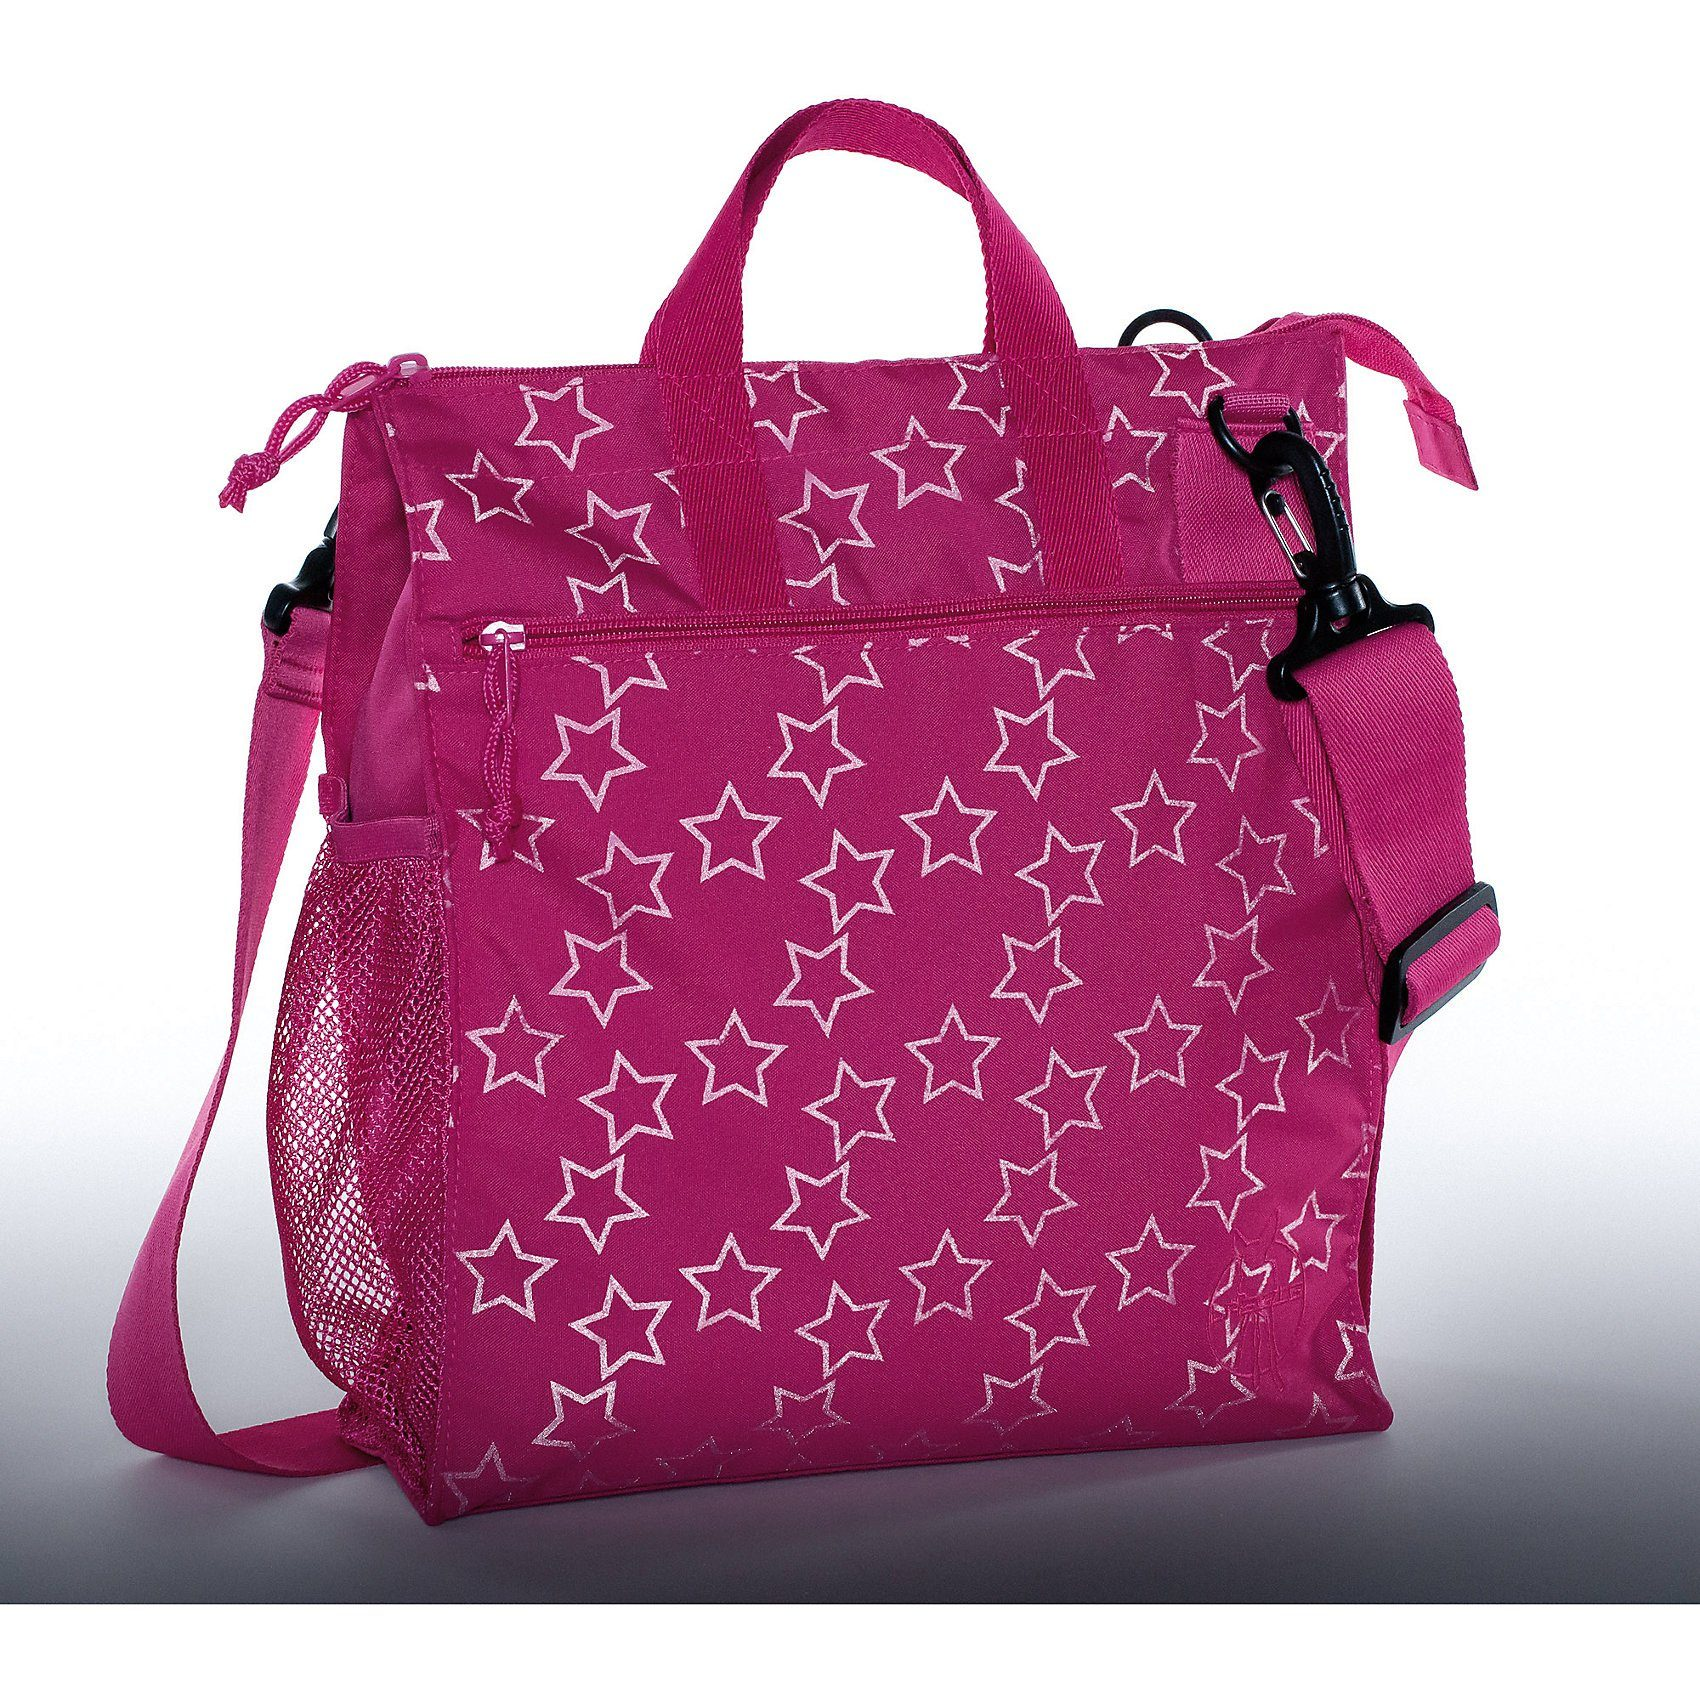 Lässig Wickeltasche Casual, Buggy Bag, Reflective Star, magenta